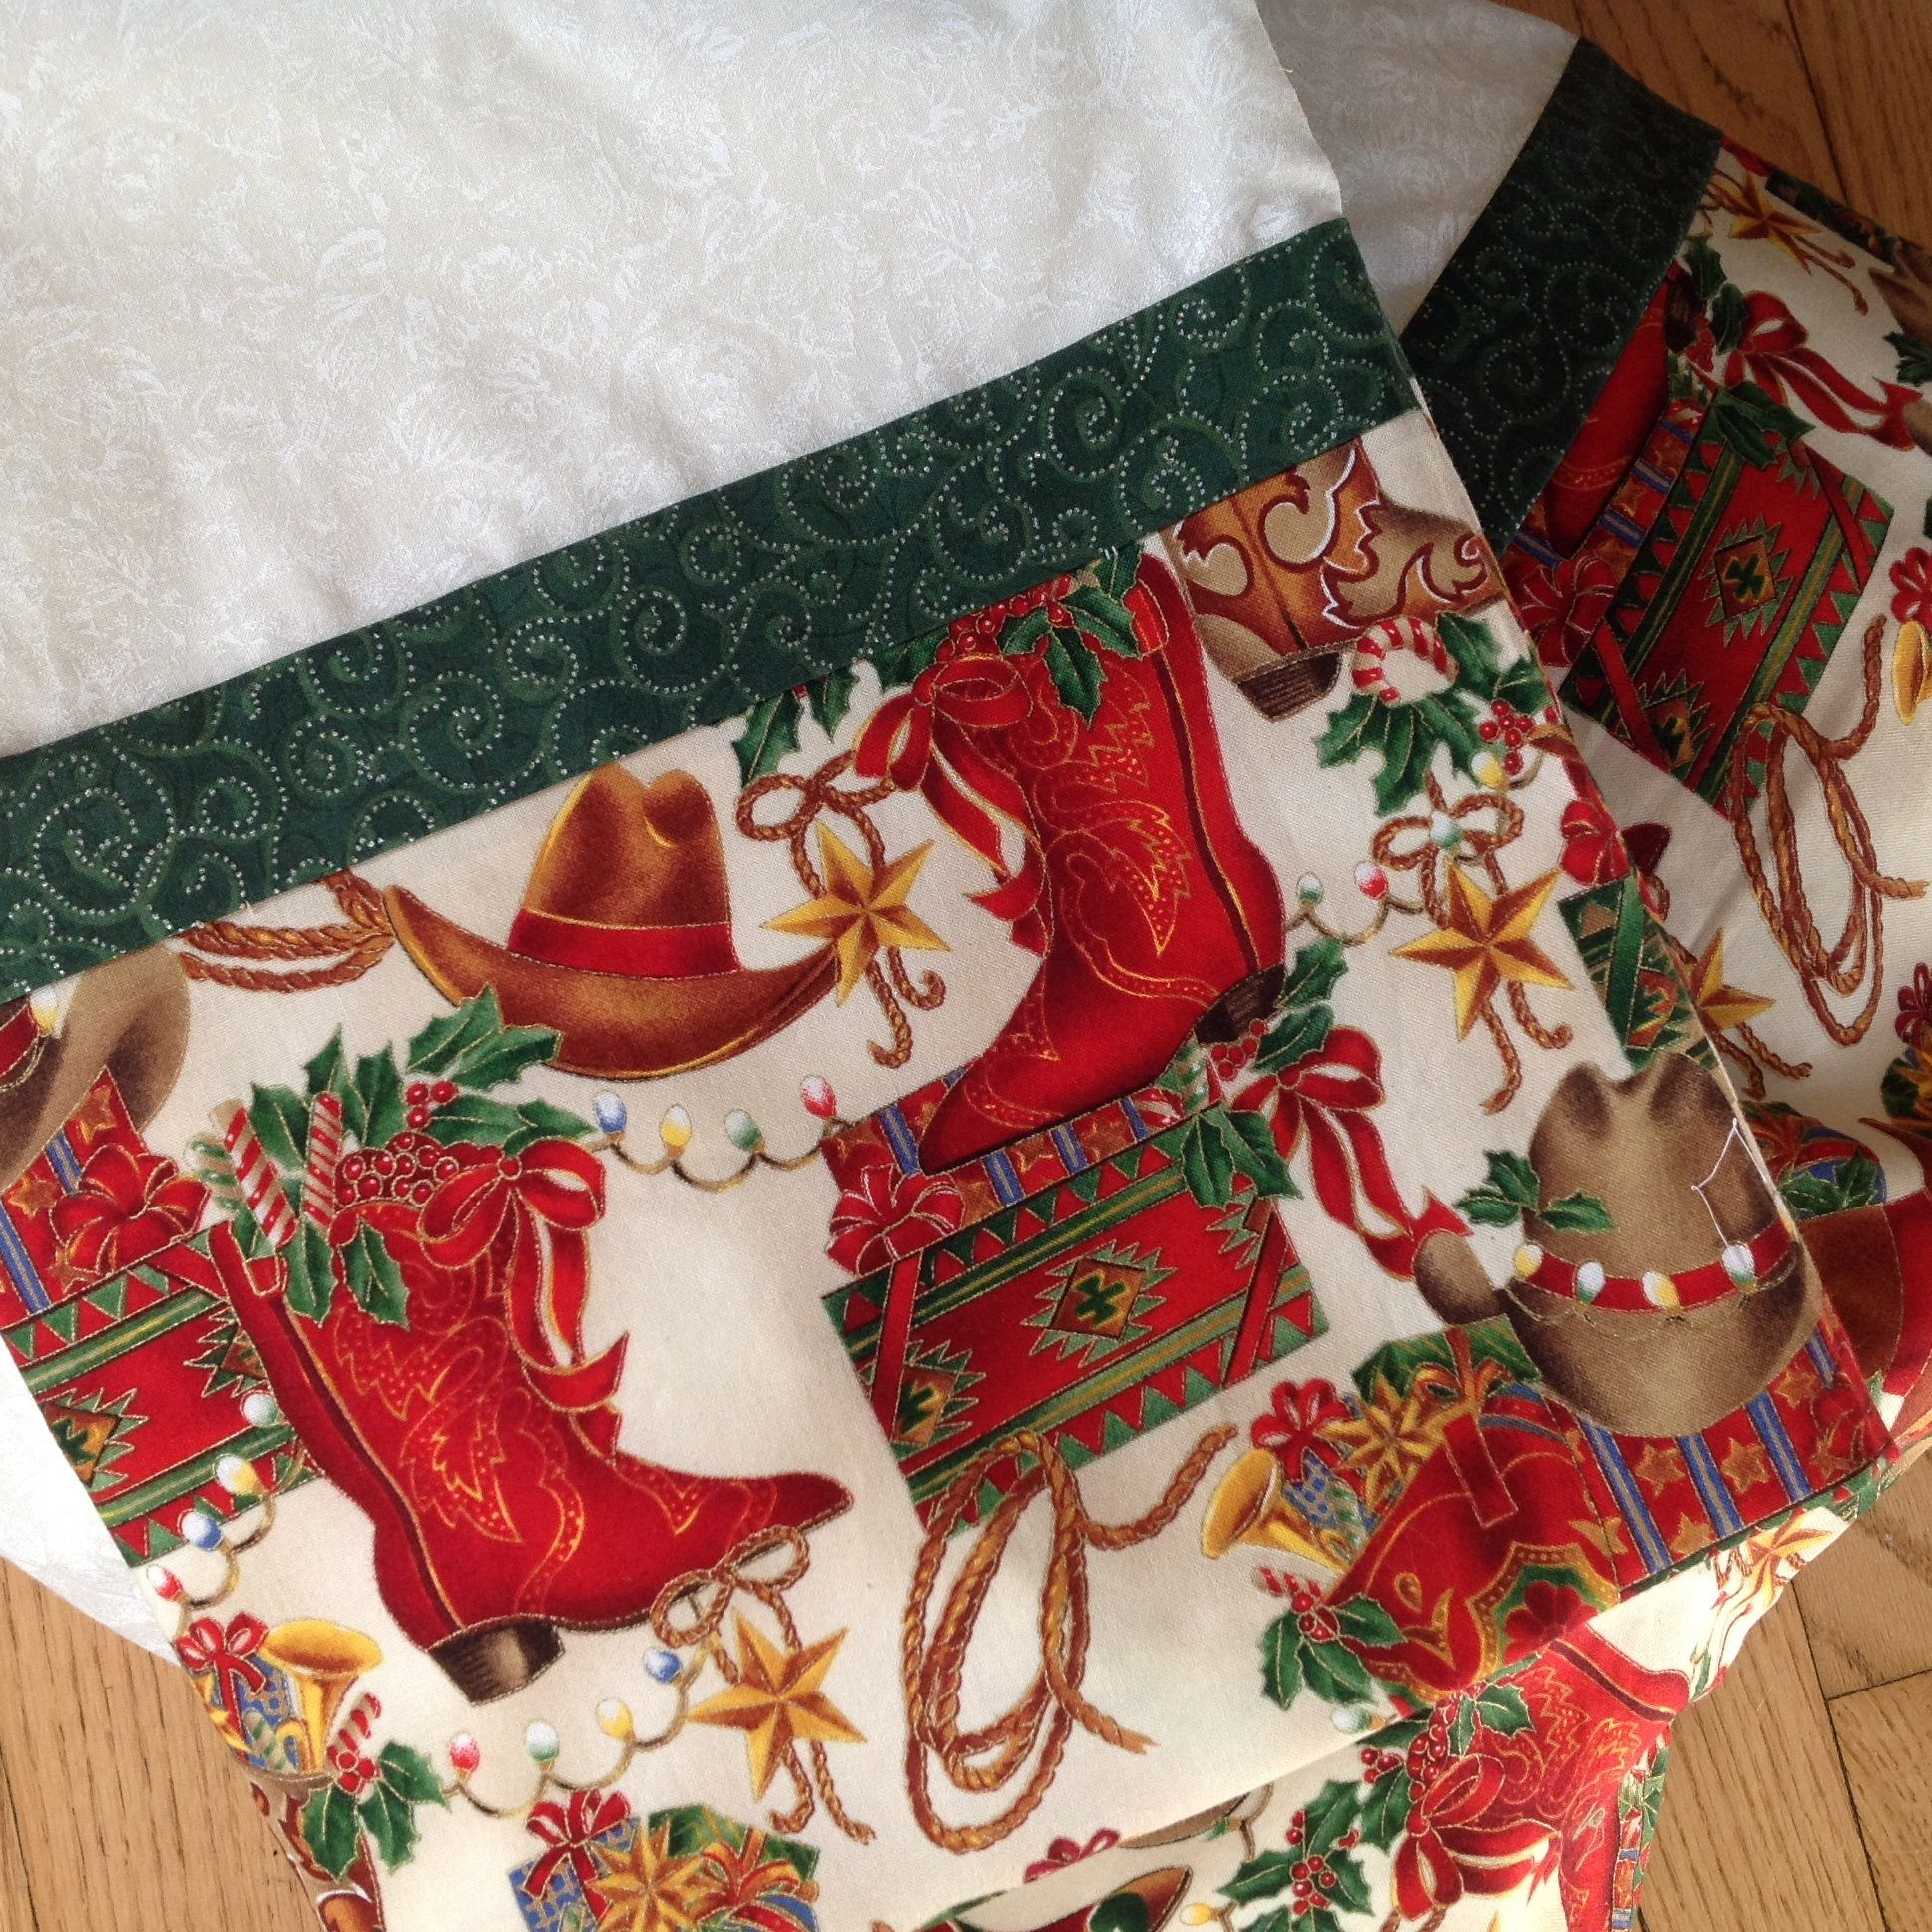 Cowgirl cowboy Christmas pillowcases, red boots, brown hats, greens ...